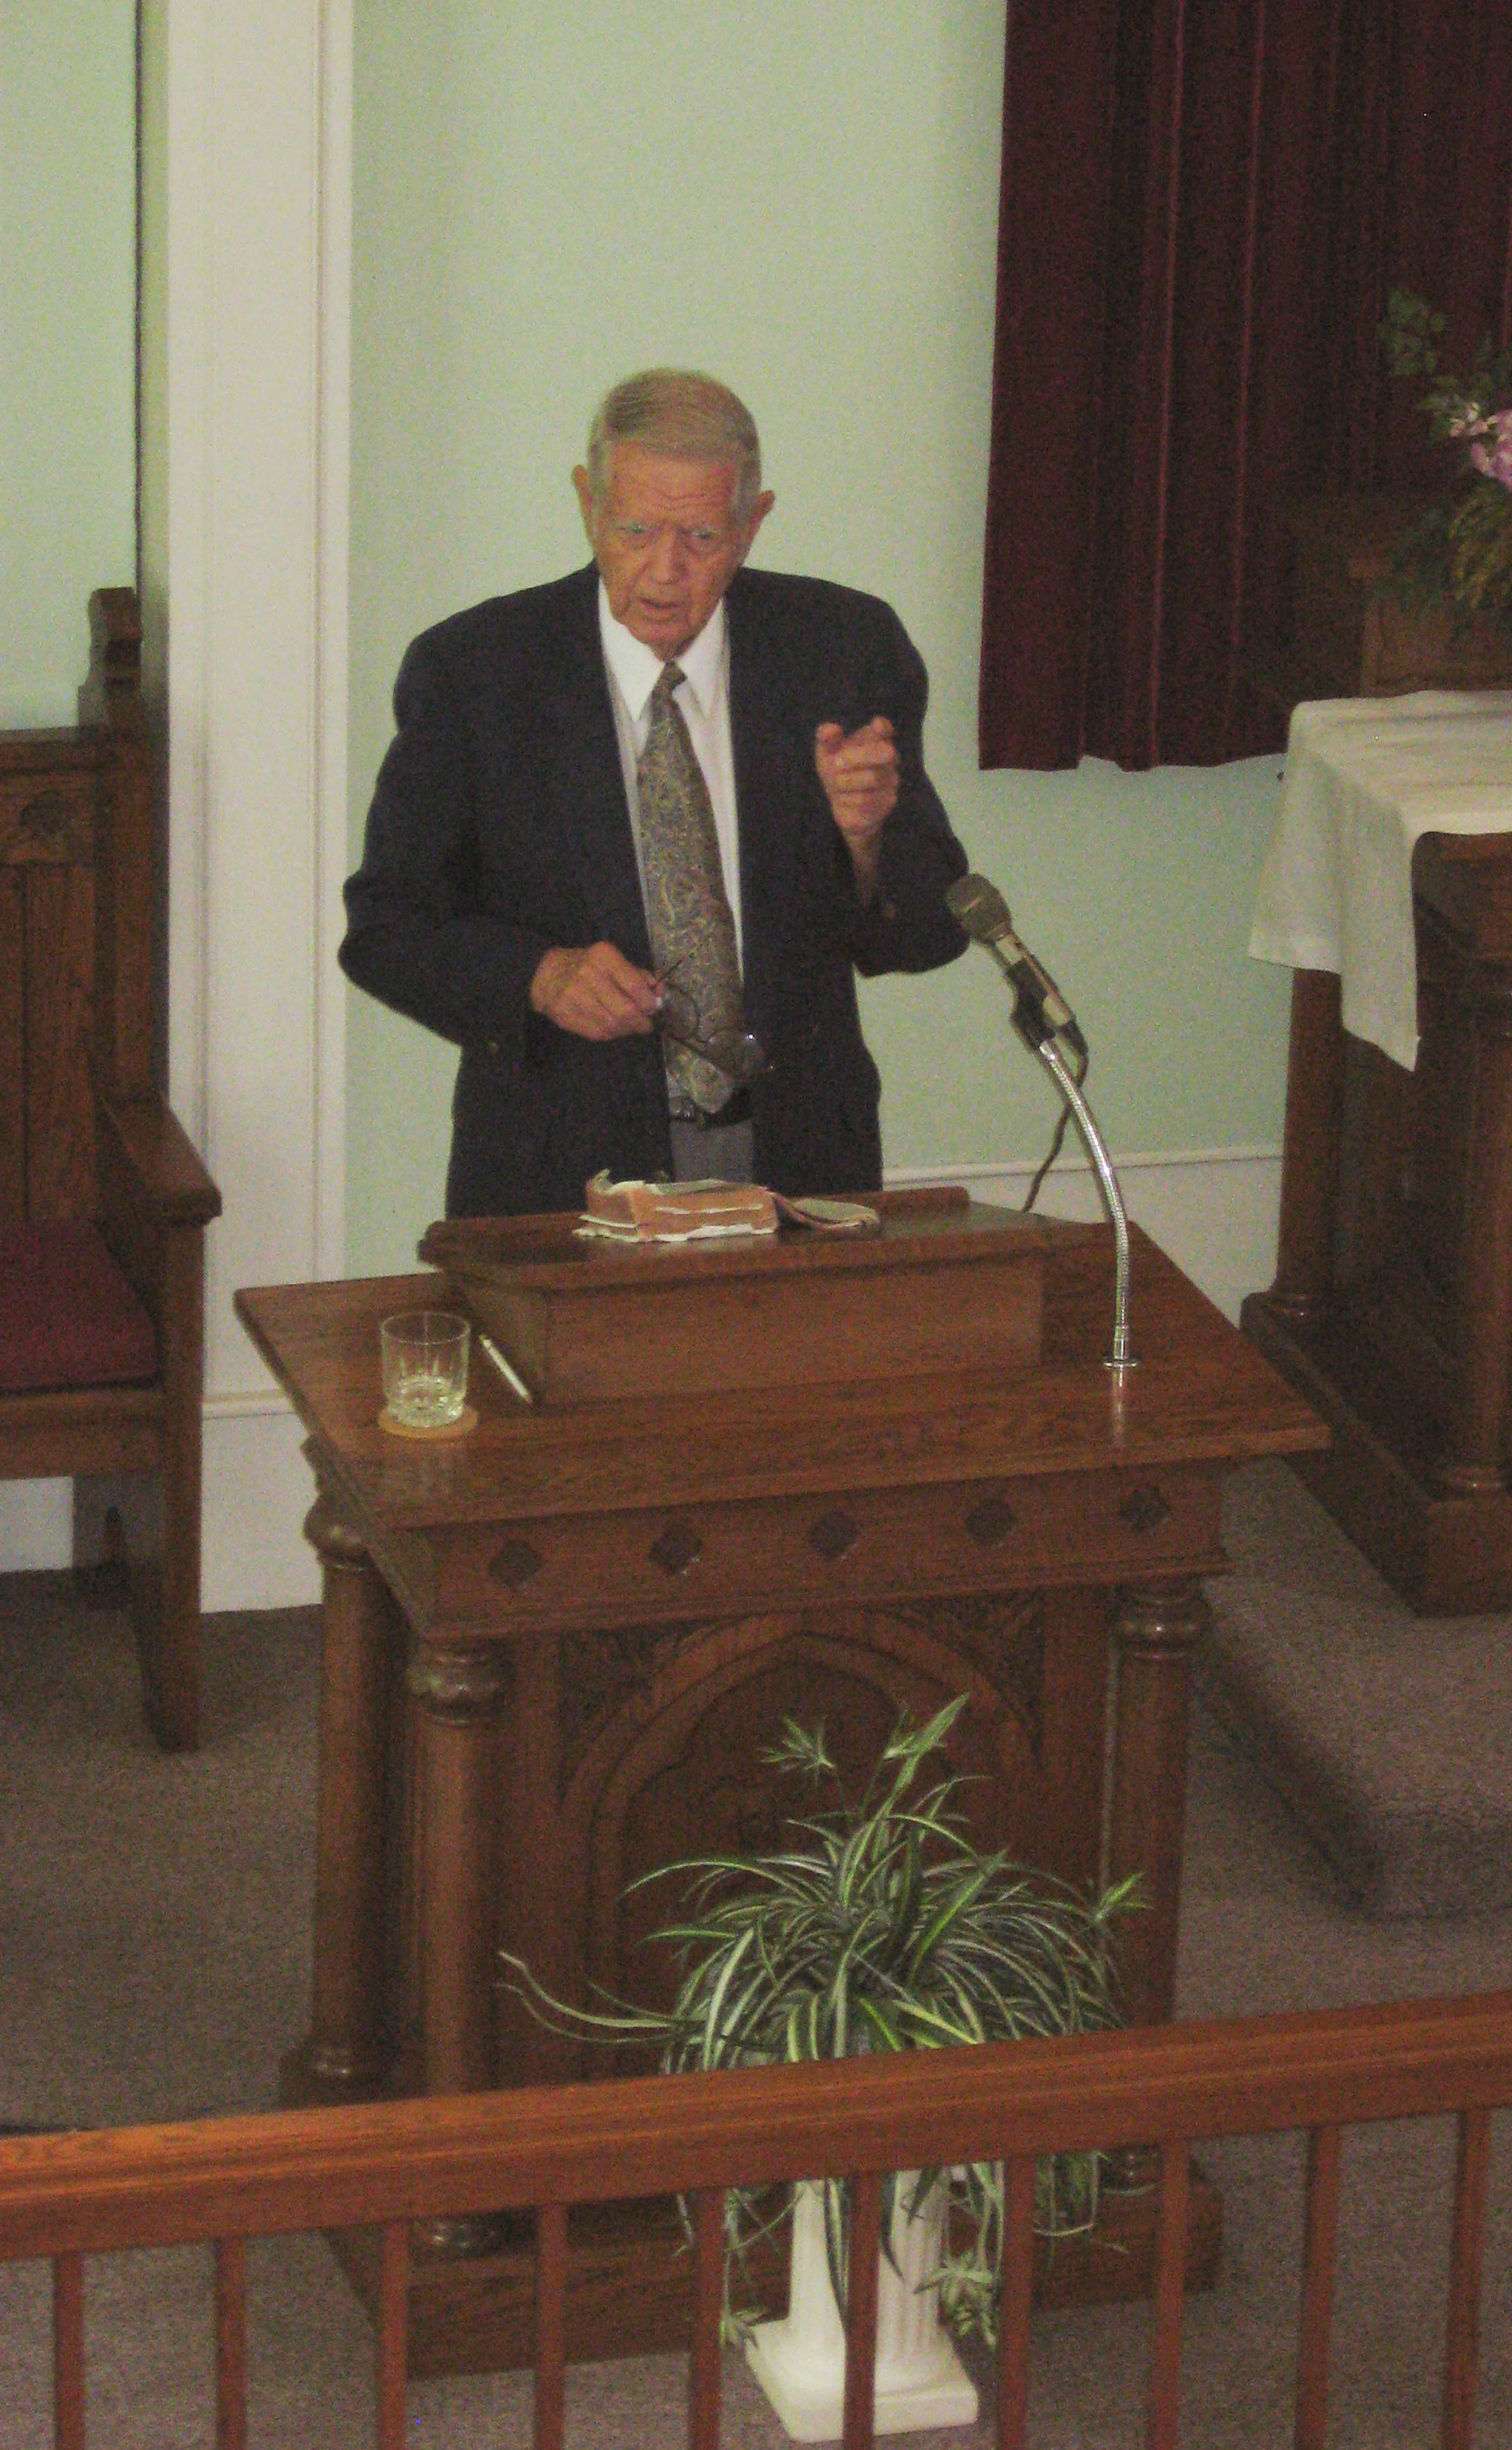 Dr. William Shea Preaching